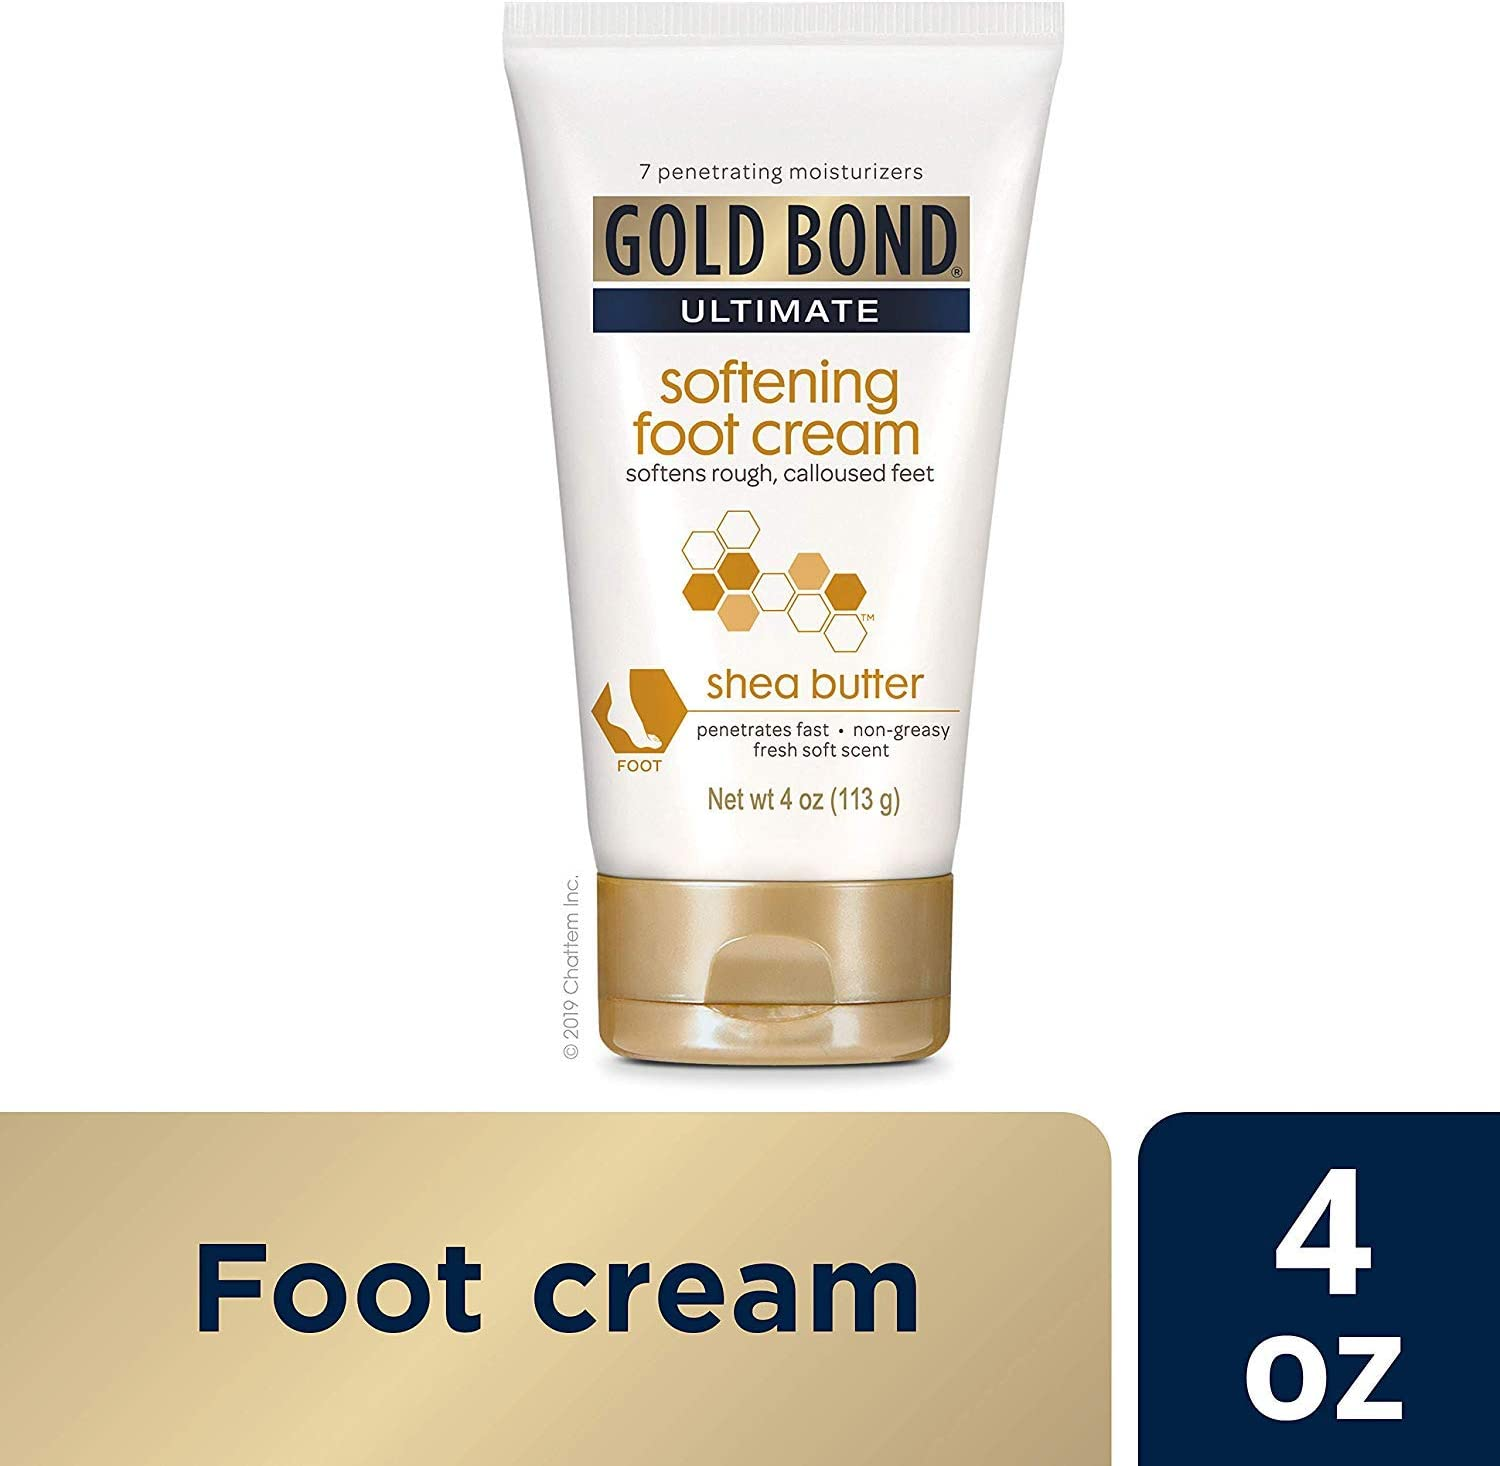 Gold Bond Ultimate Softening Foot Cream With Shea Butter - 4 Ounce Pack of 3